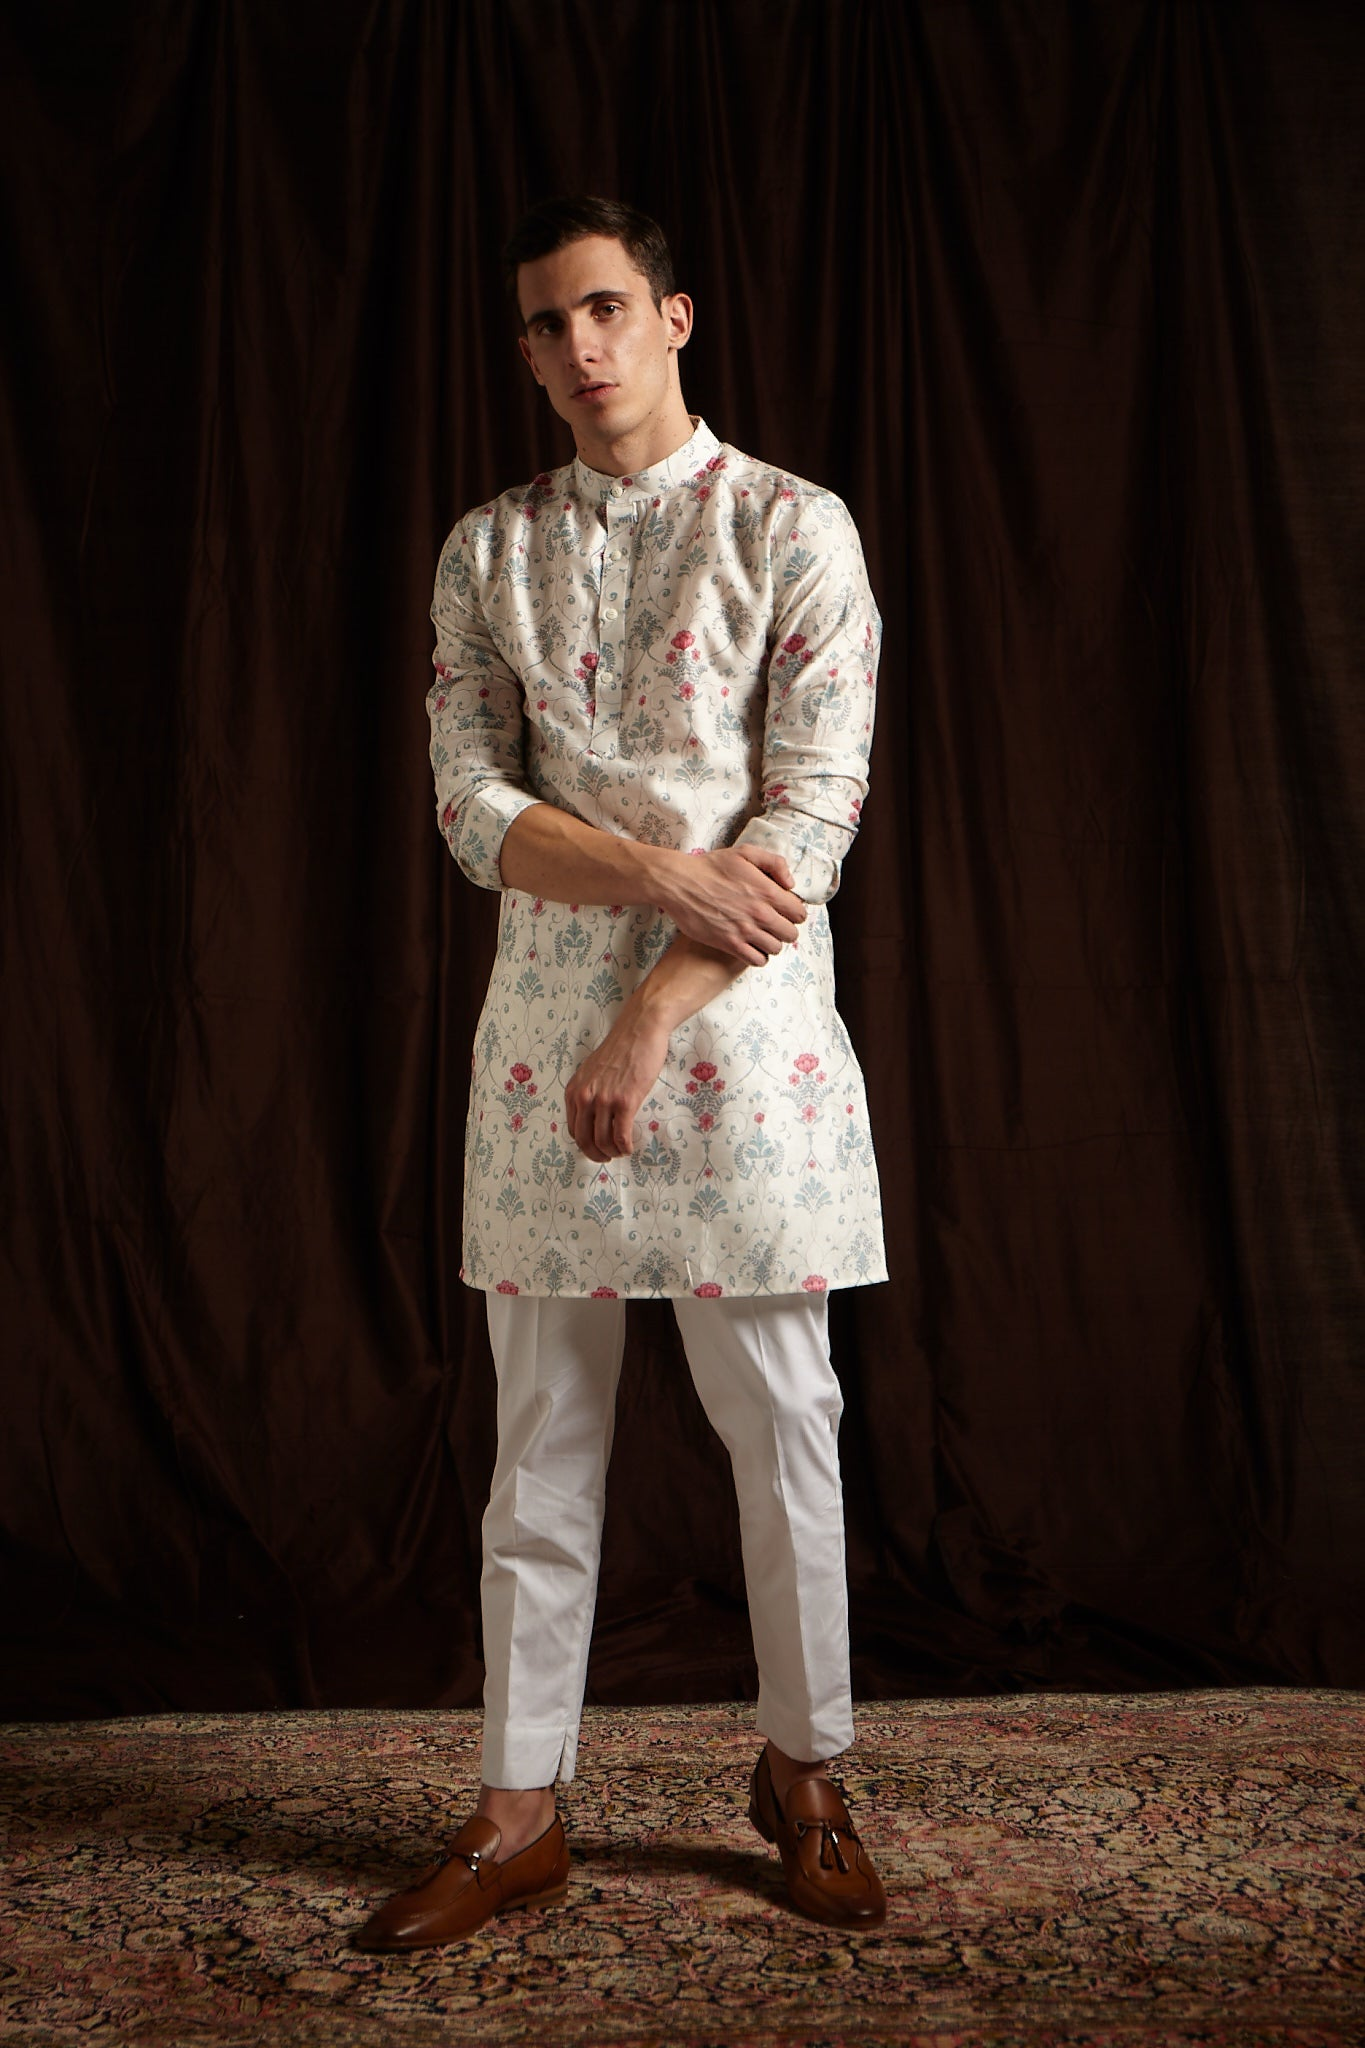 The Greenhouse Mal Cotton Kurta Pajama Set in Moody Blue and Pink